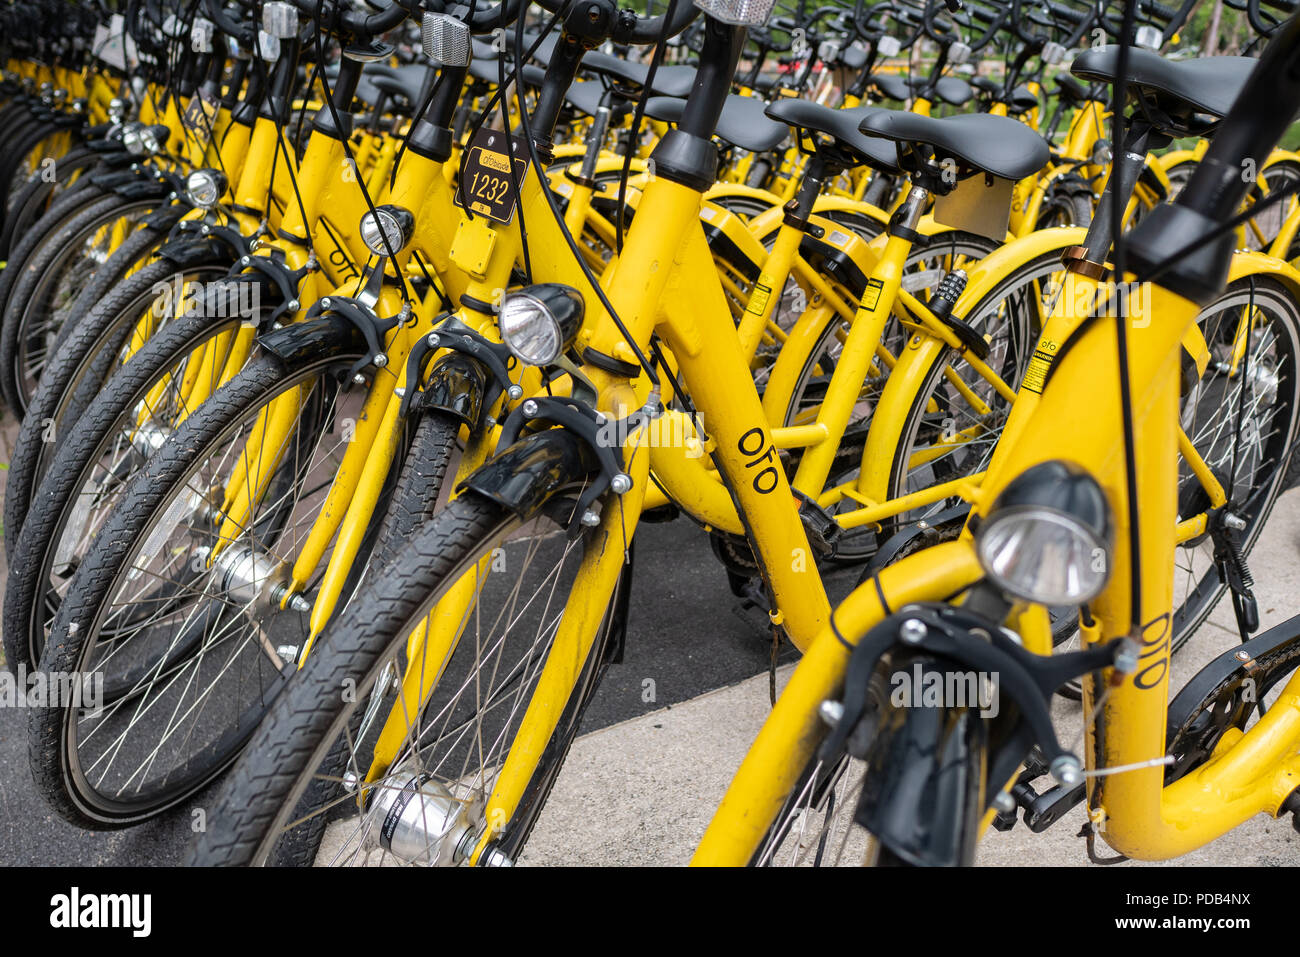 Pathum Thani, Thailand - May 3, 2018 : Ofo bikes are parked on the side of the road. Ofo is a bike-sharing service provider. - Stock Image